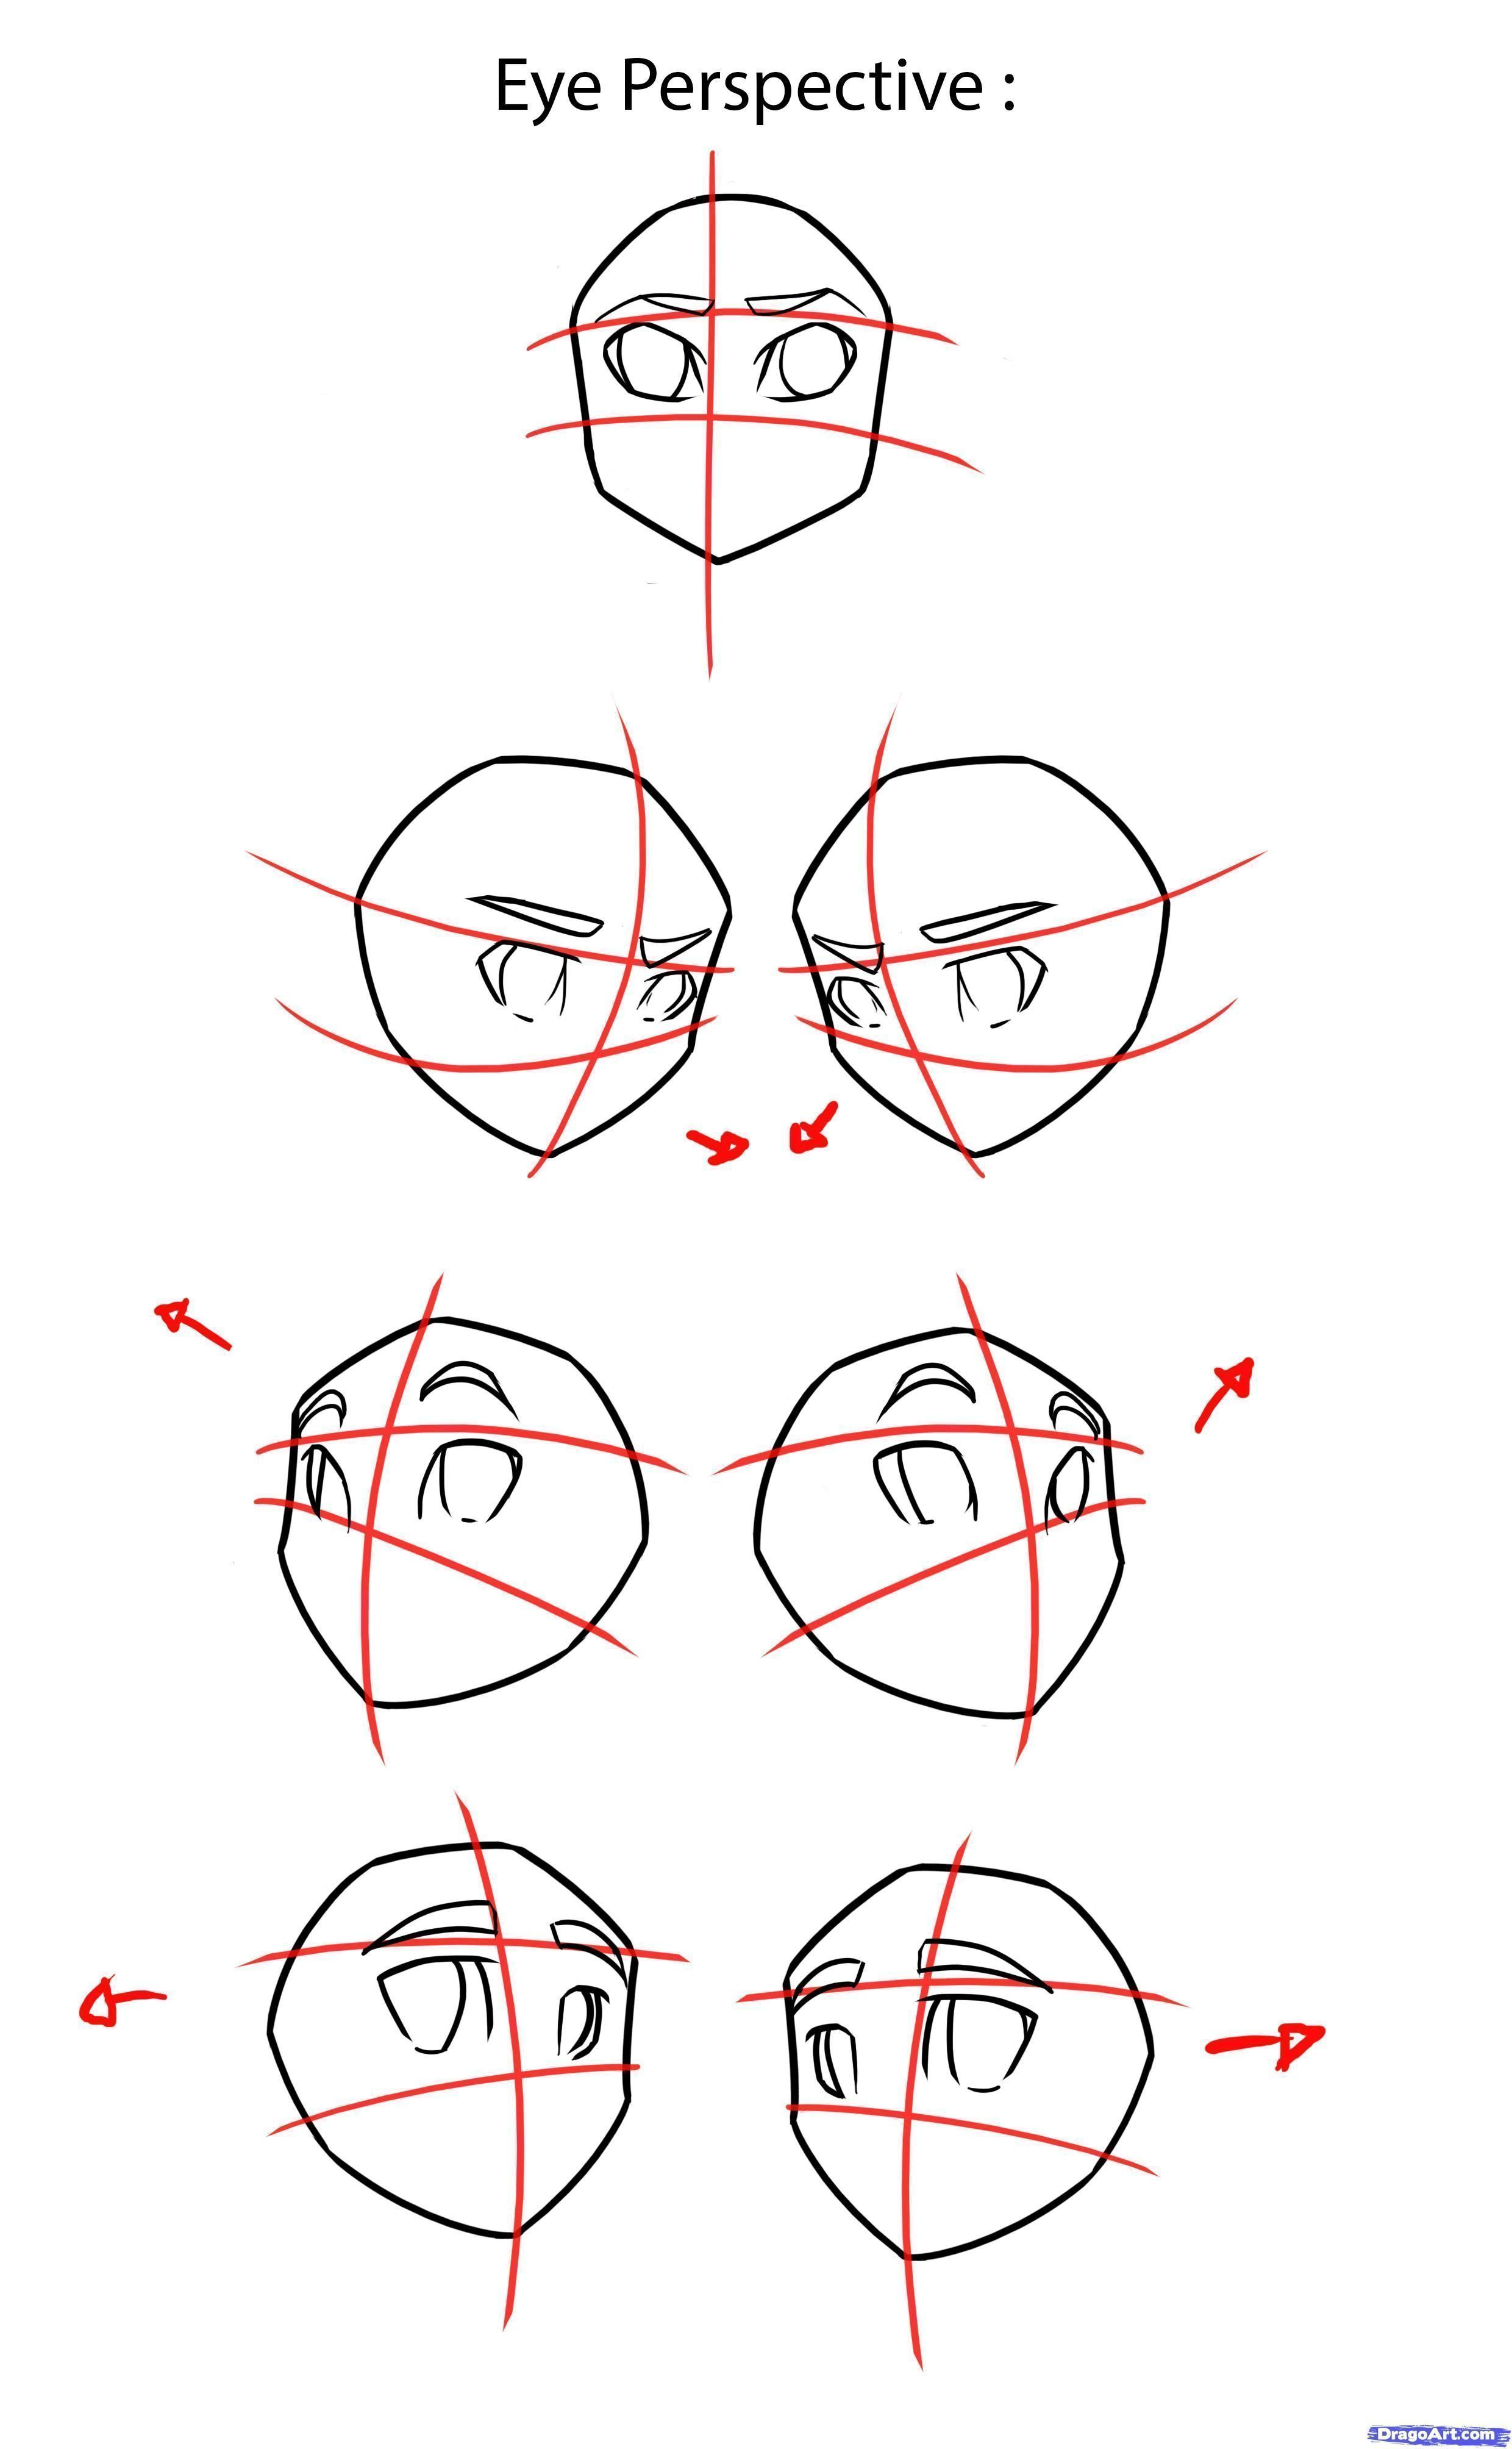 How To Draw Anime Eyes Step By Step Anime Eyes Anime Draw Japanese Anime Draw Manga Free Anime Drawings Tutorials How To Draw Anime Eyes Drawing Tutorial